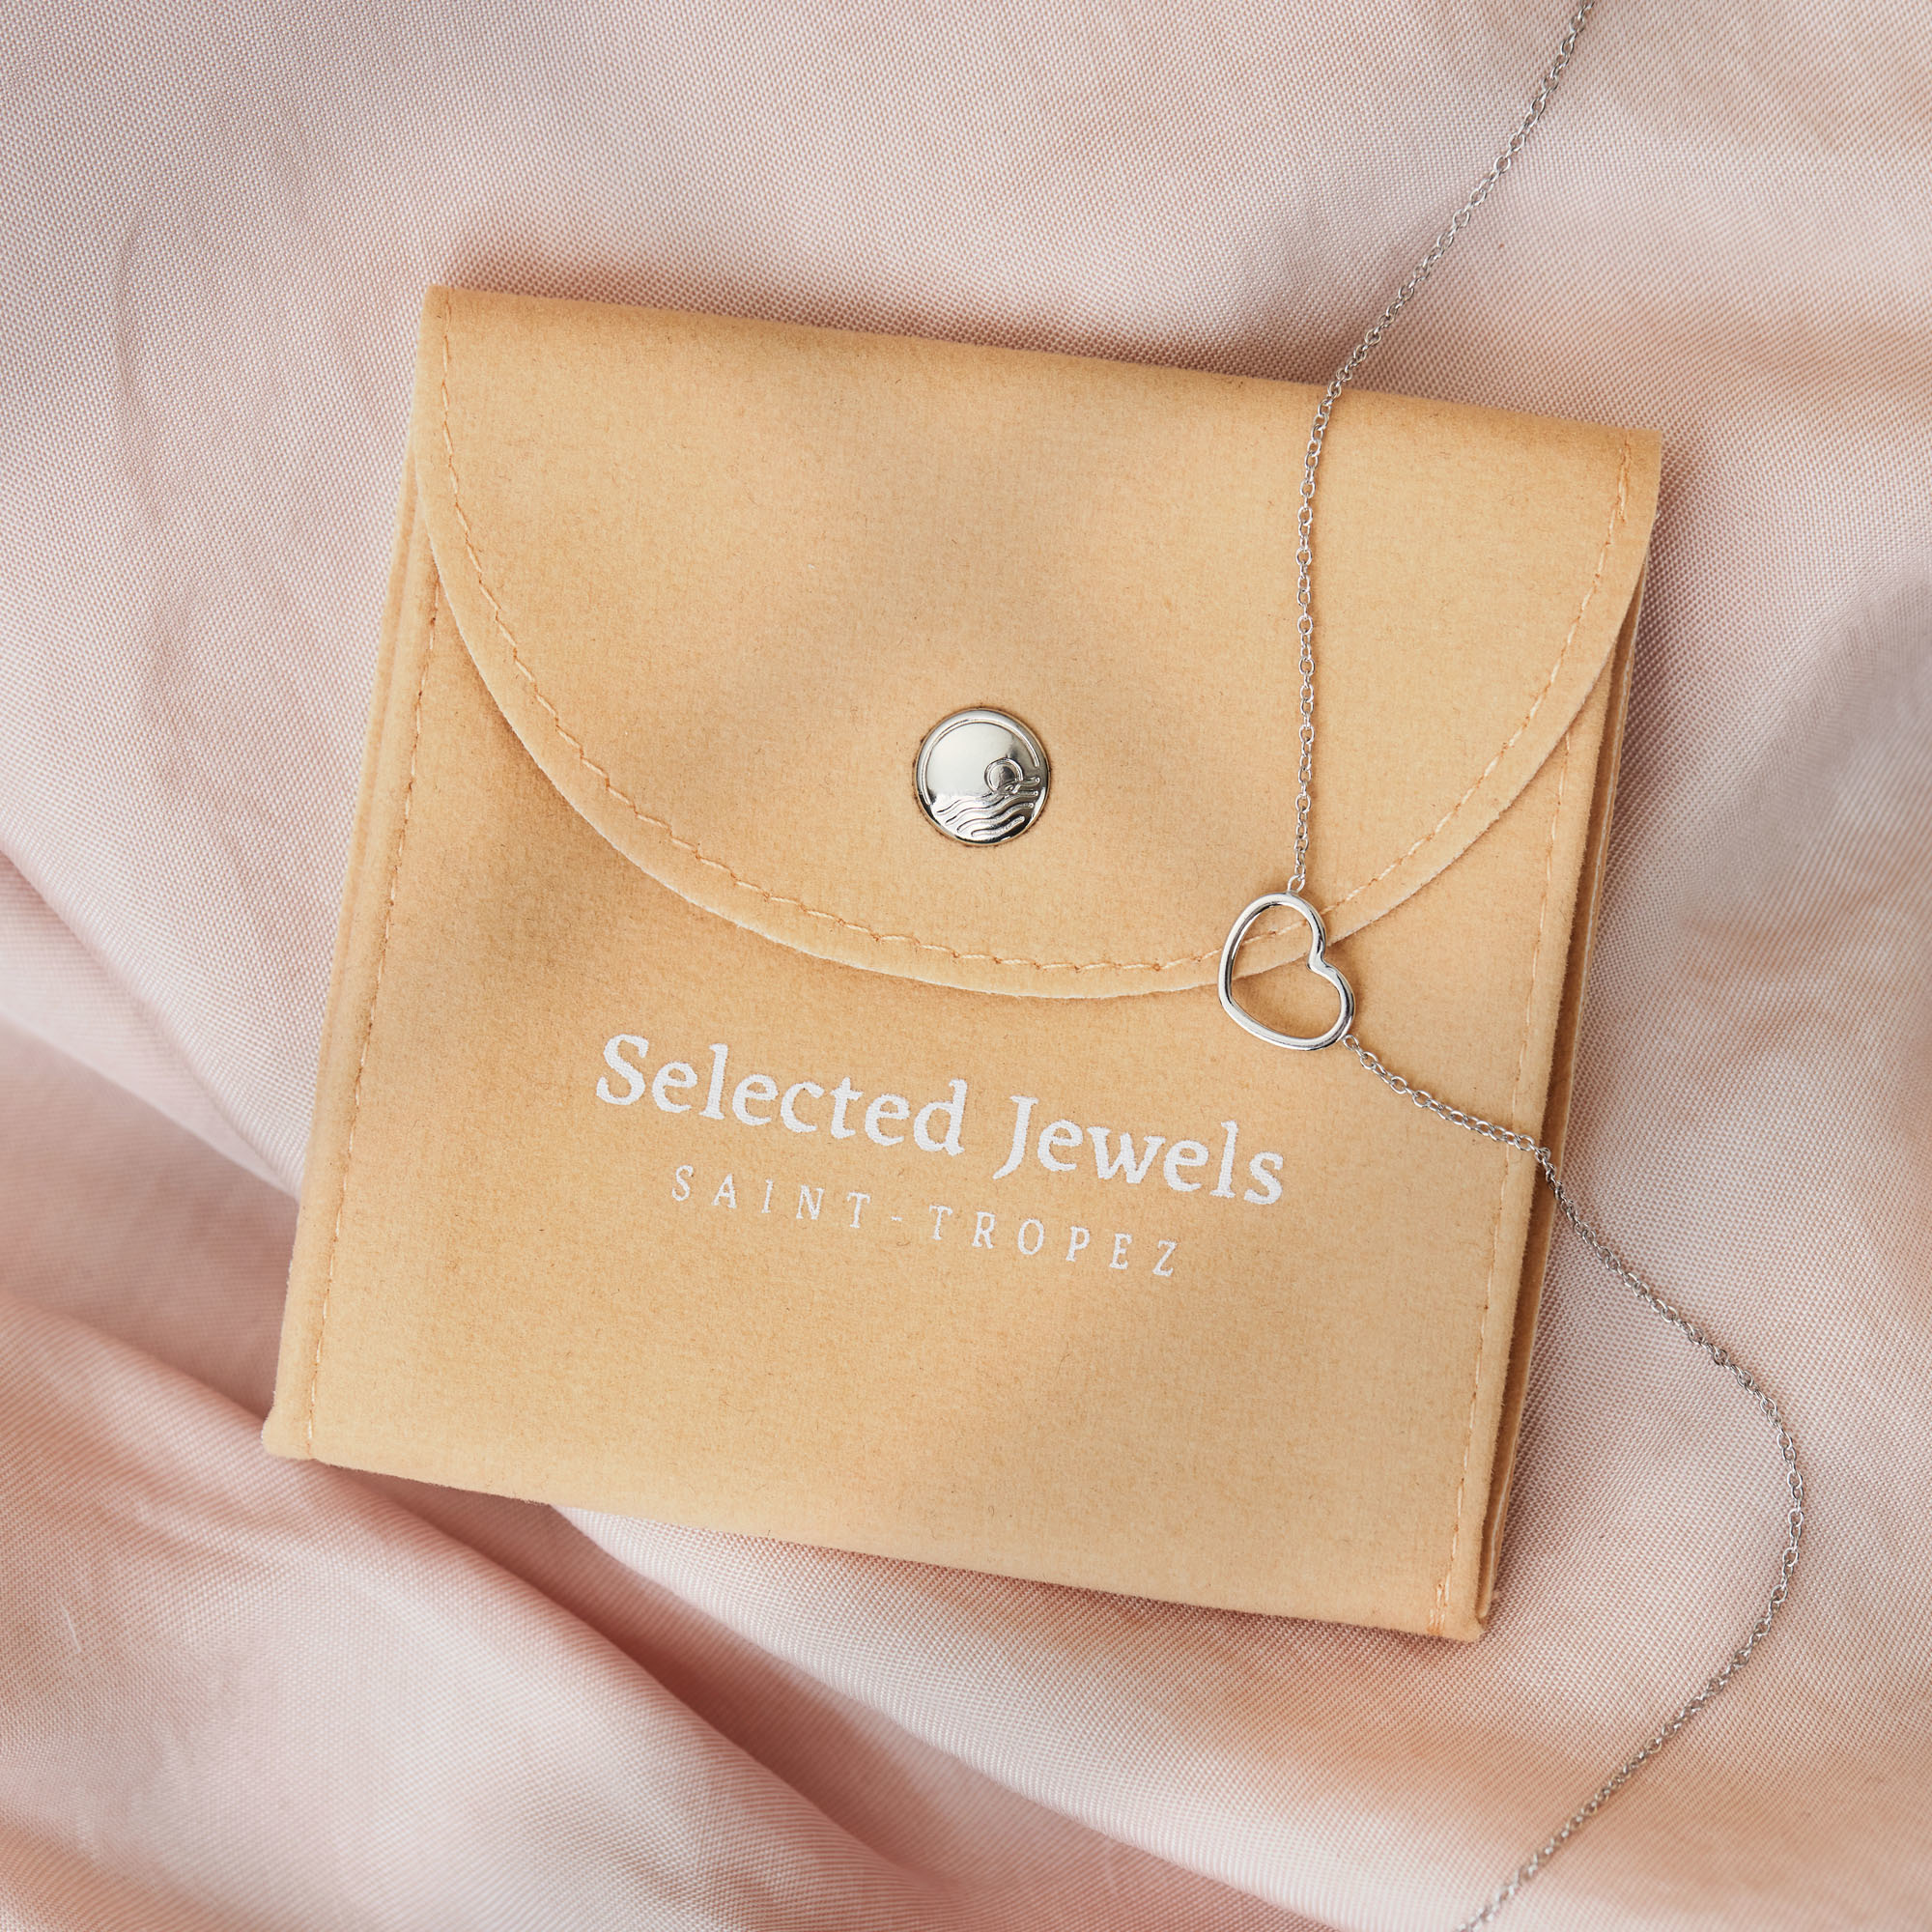 Selected Jewels Julie Chloé 925 Sterling Silber Initiale Armband